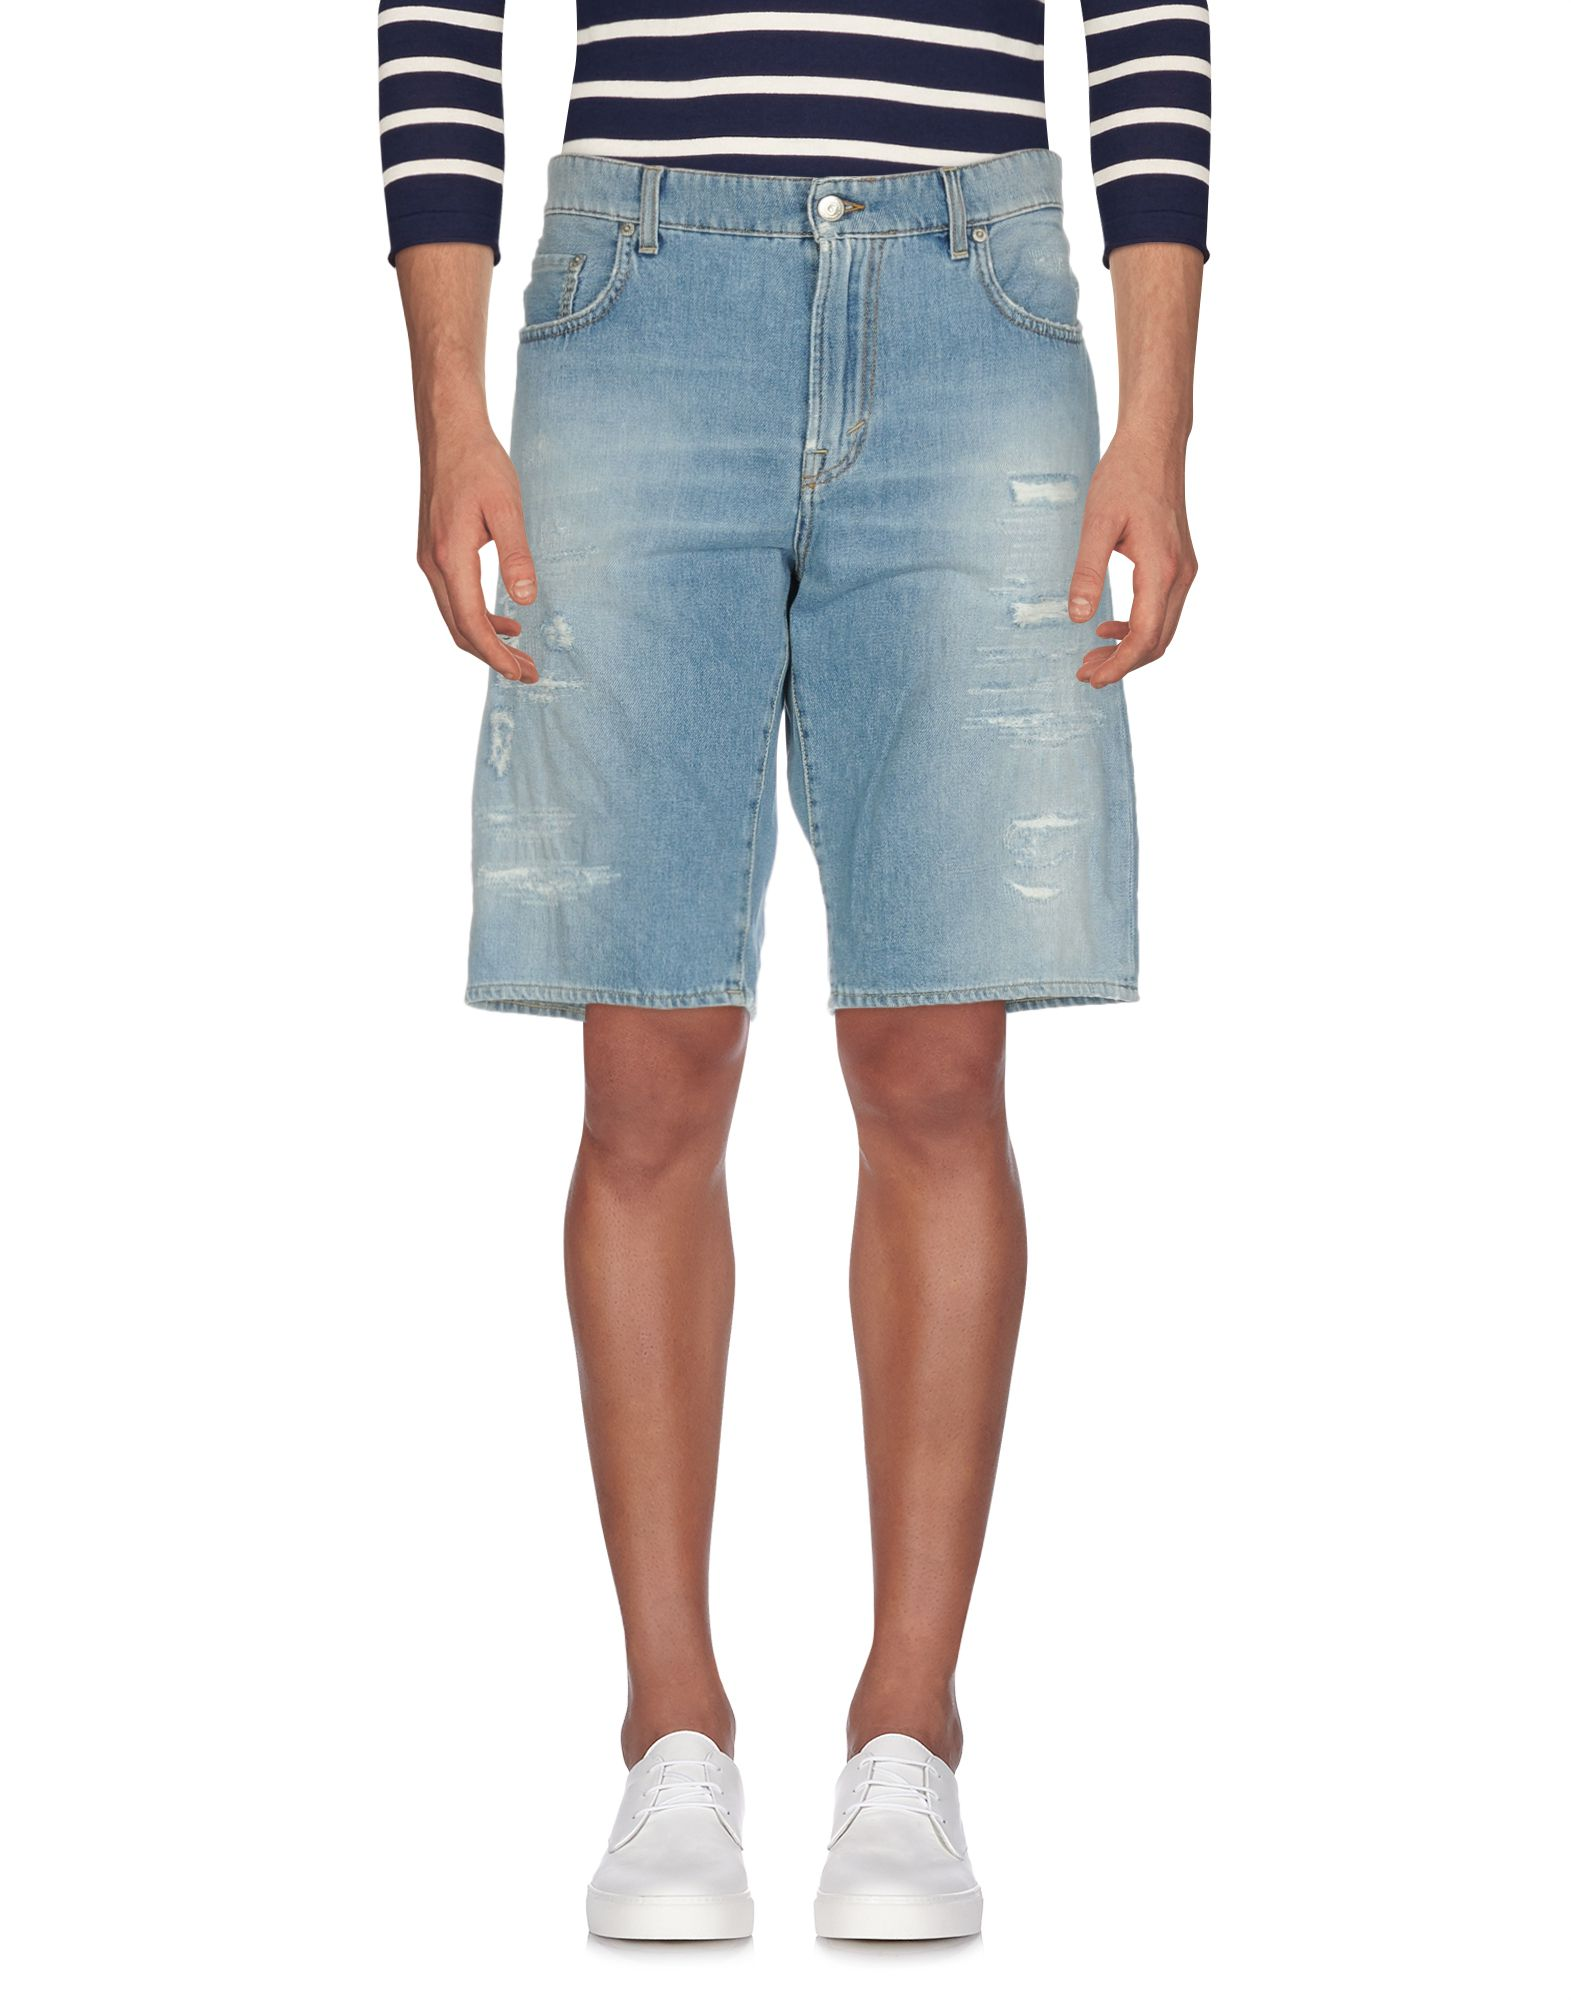 Shorts 42659210WR Jeans Department 5 Uomo - 42659210WR Shorts 2dc69a